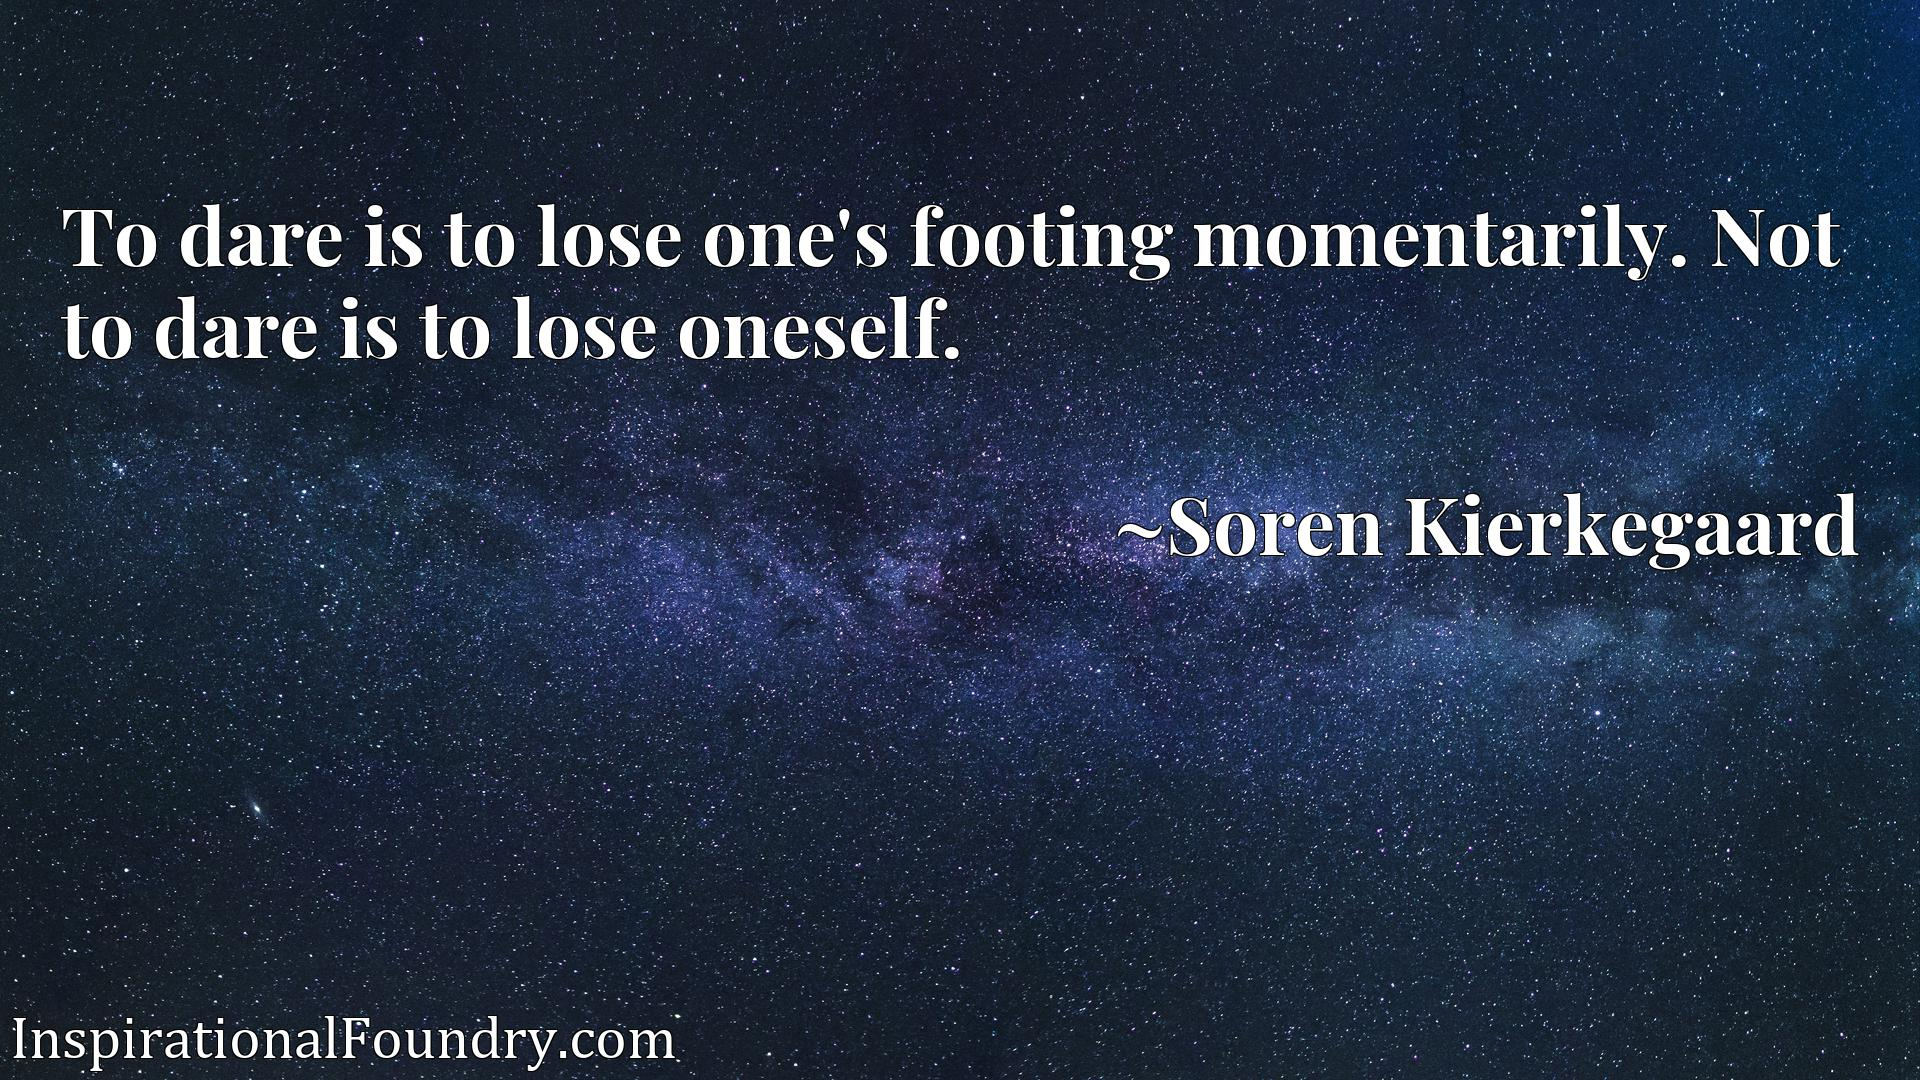 To dare is to lose one's footing momentarily. Not to dare is to lose oneself.